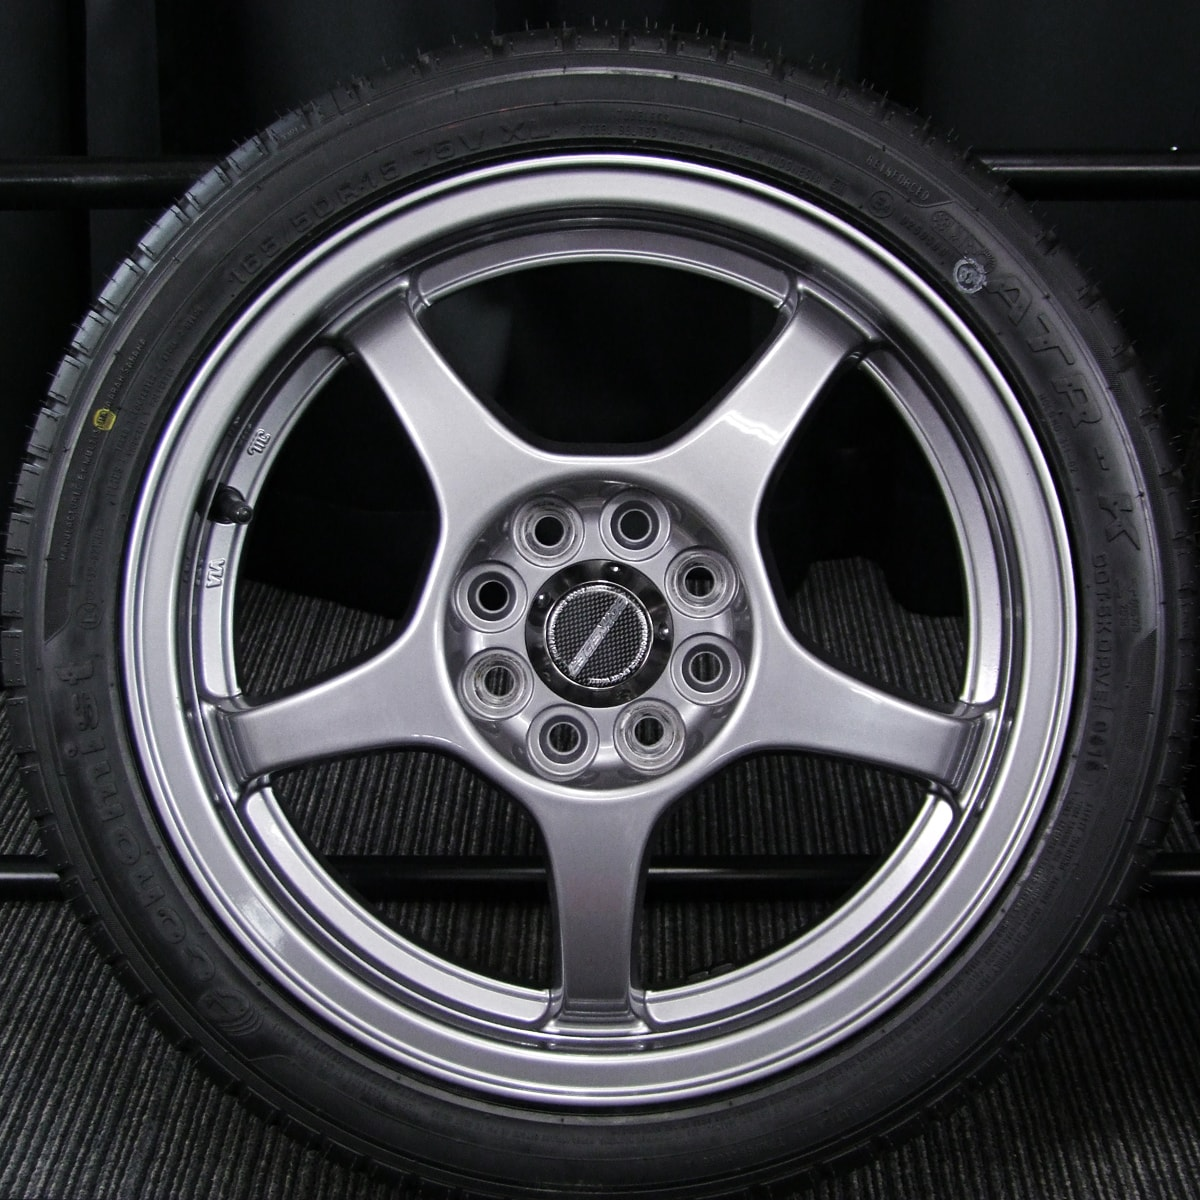 A-TECH SCHNEIDER AS-05 ガンメタ ATR SPORT Economist ATR-K 165/50R15 4本SET